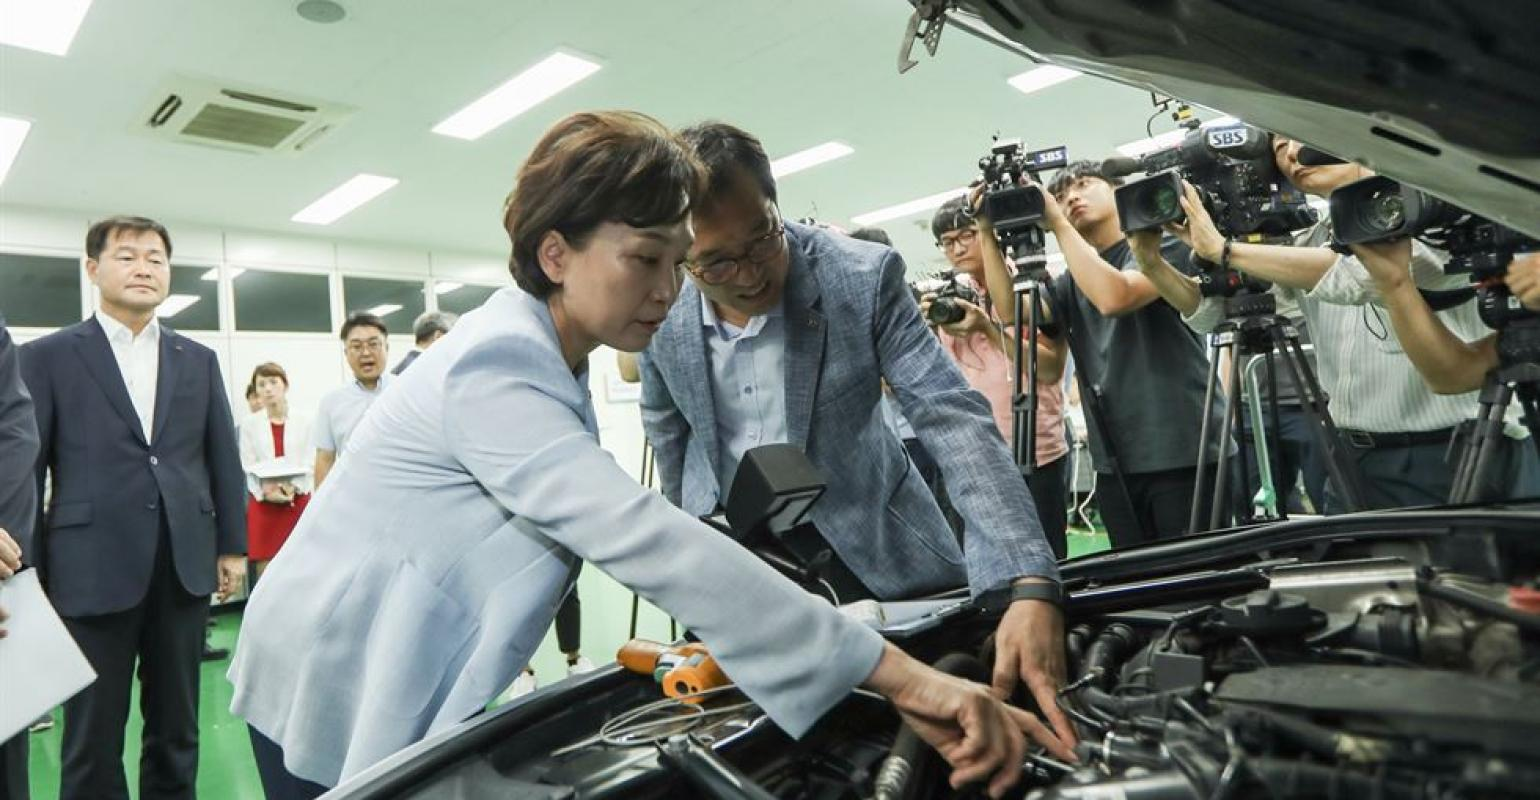 Engine Fires Prompt Bmw Recall In South Korea Wardsauto 3 0 Problems Transport Minister Kim Studies Vehicle Inspection Process At Transportation Authority Safety Agency Lab